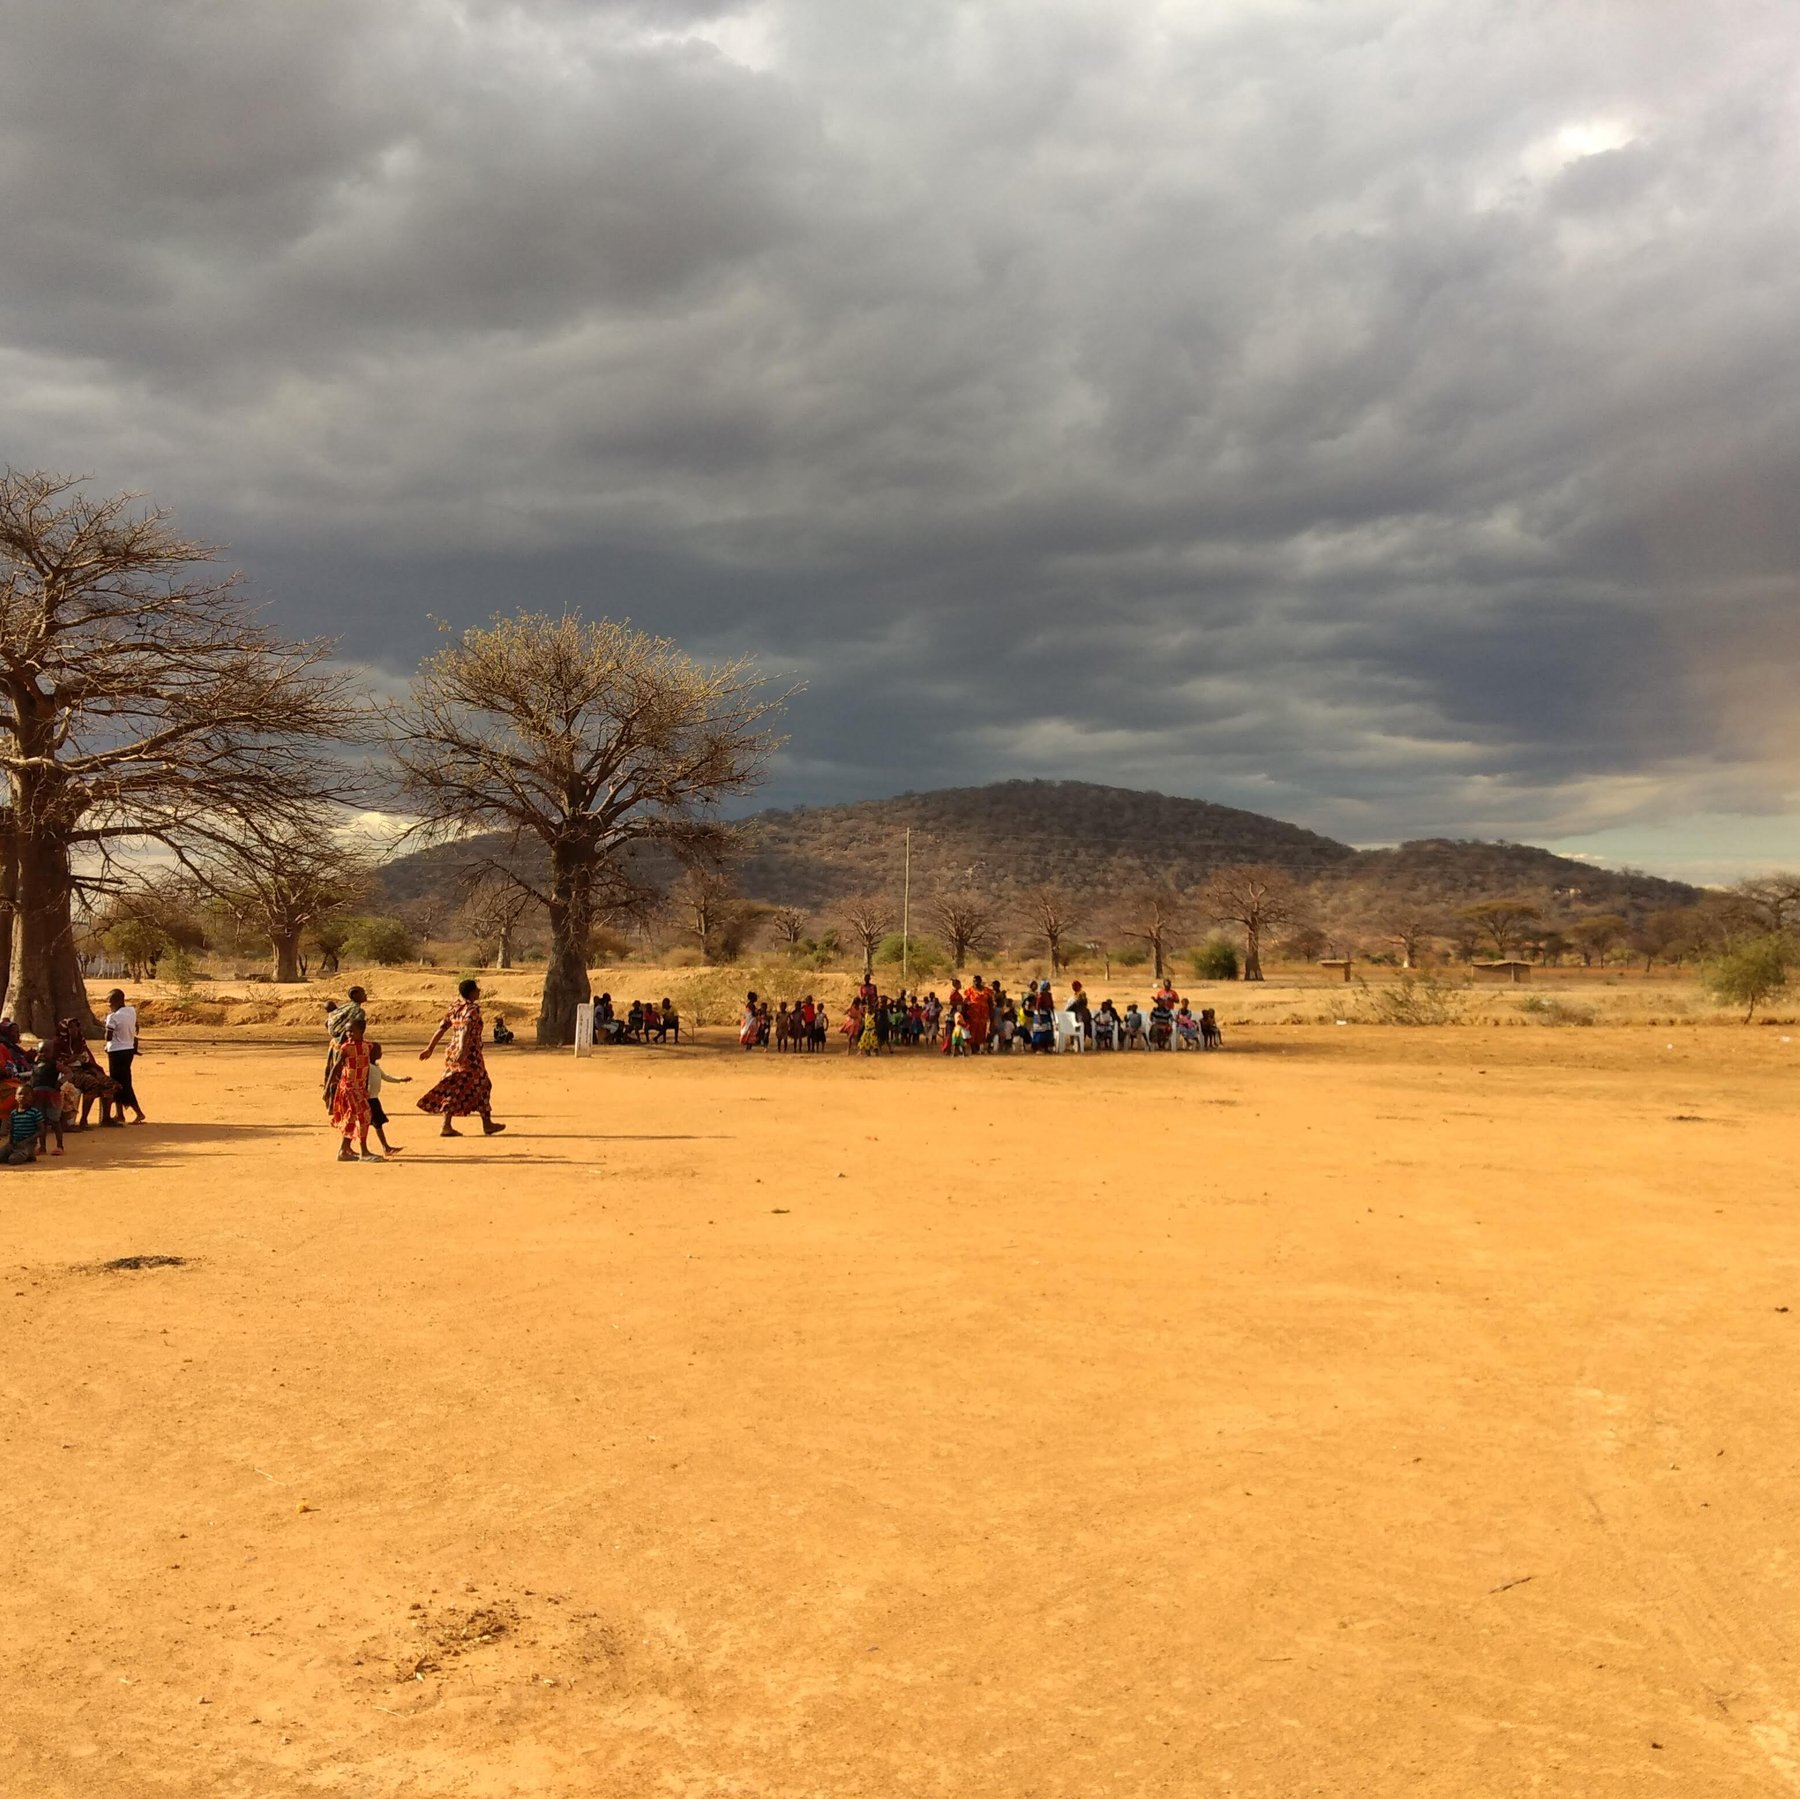 people on brown field near trees under cloudy sky during daytime